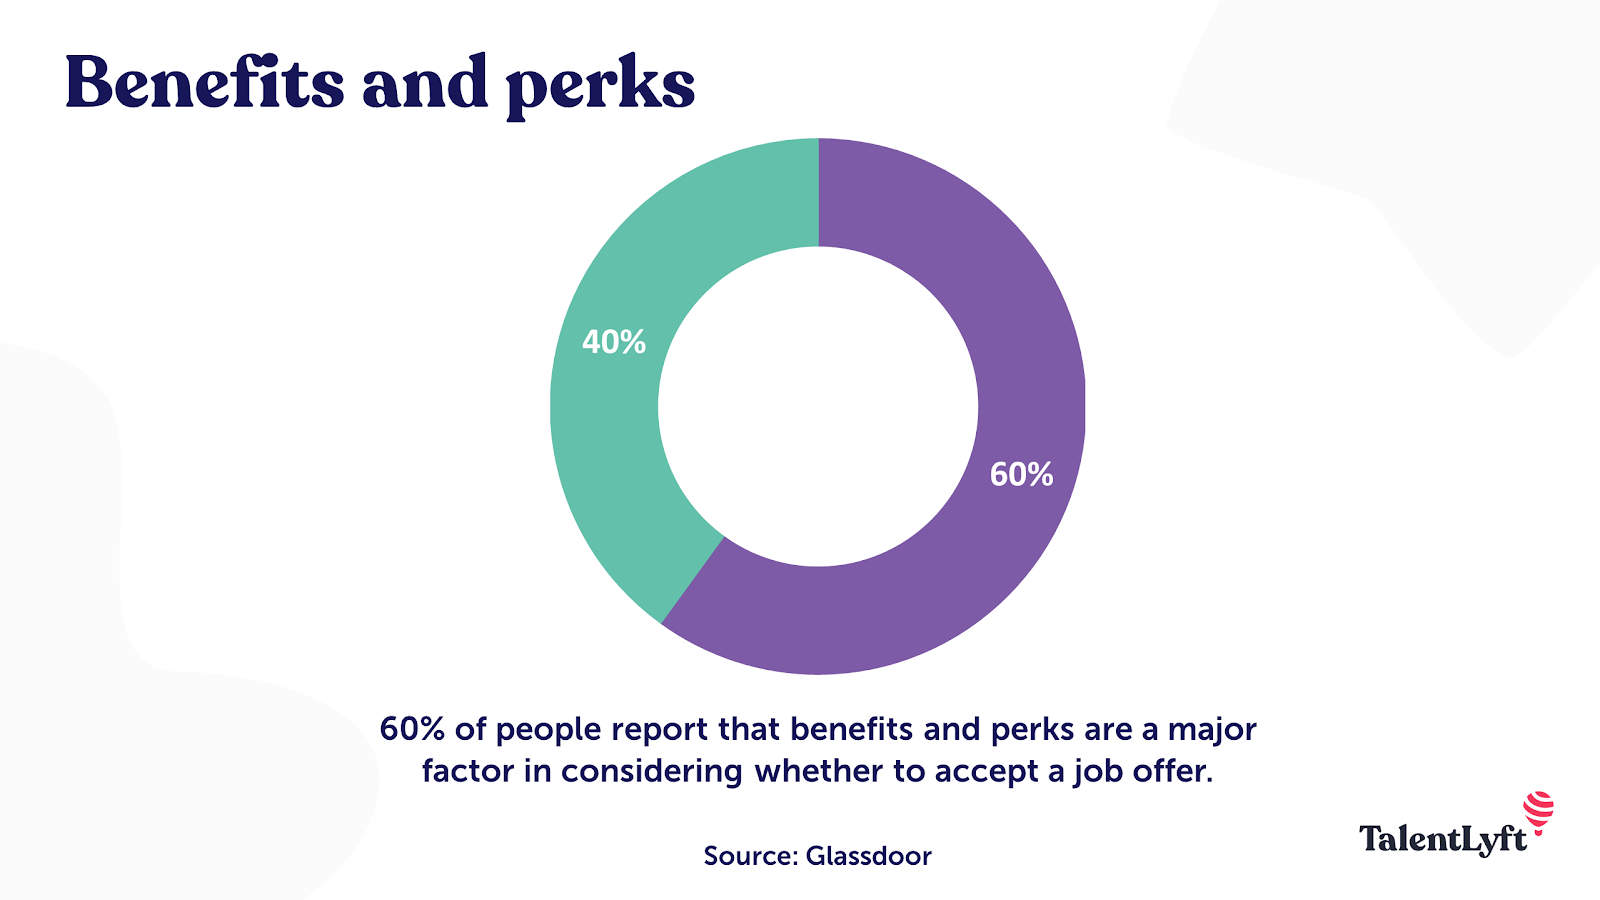 Benefits role in talent attraction